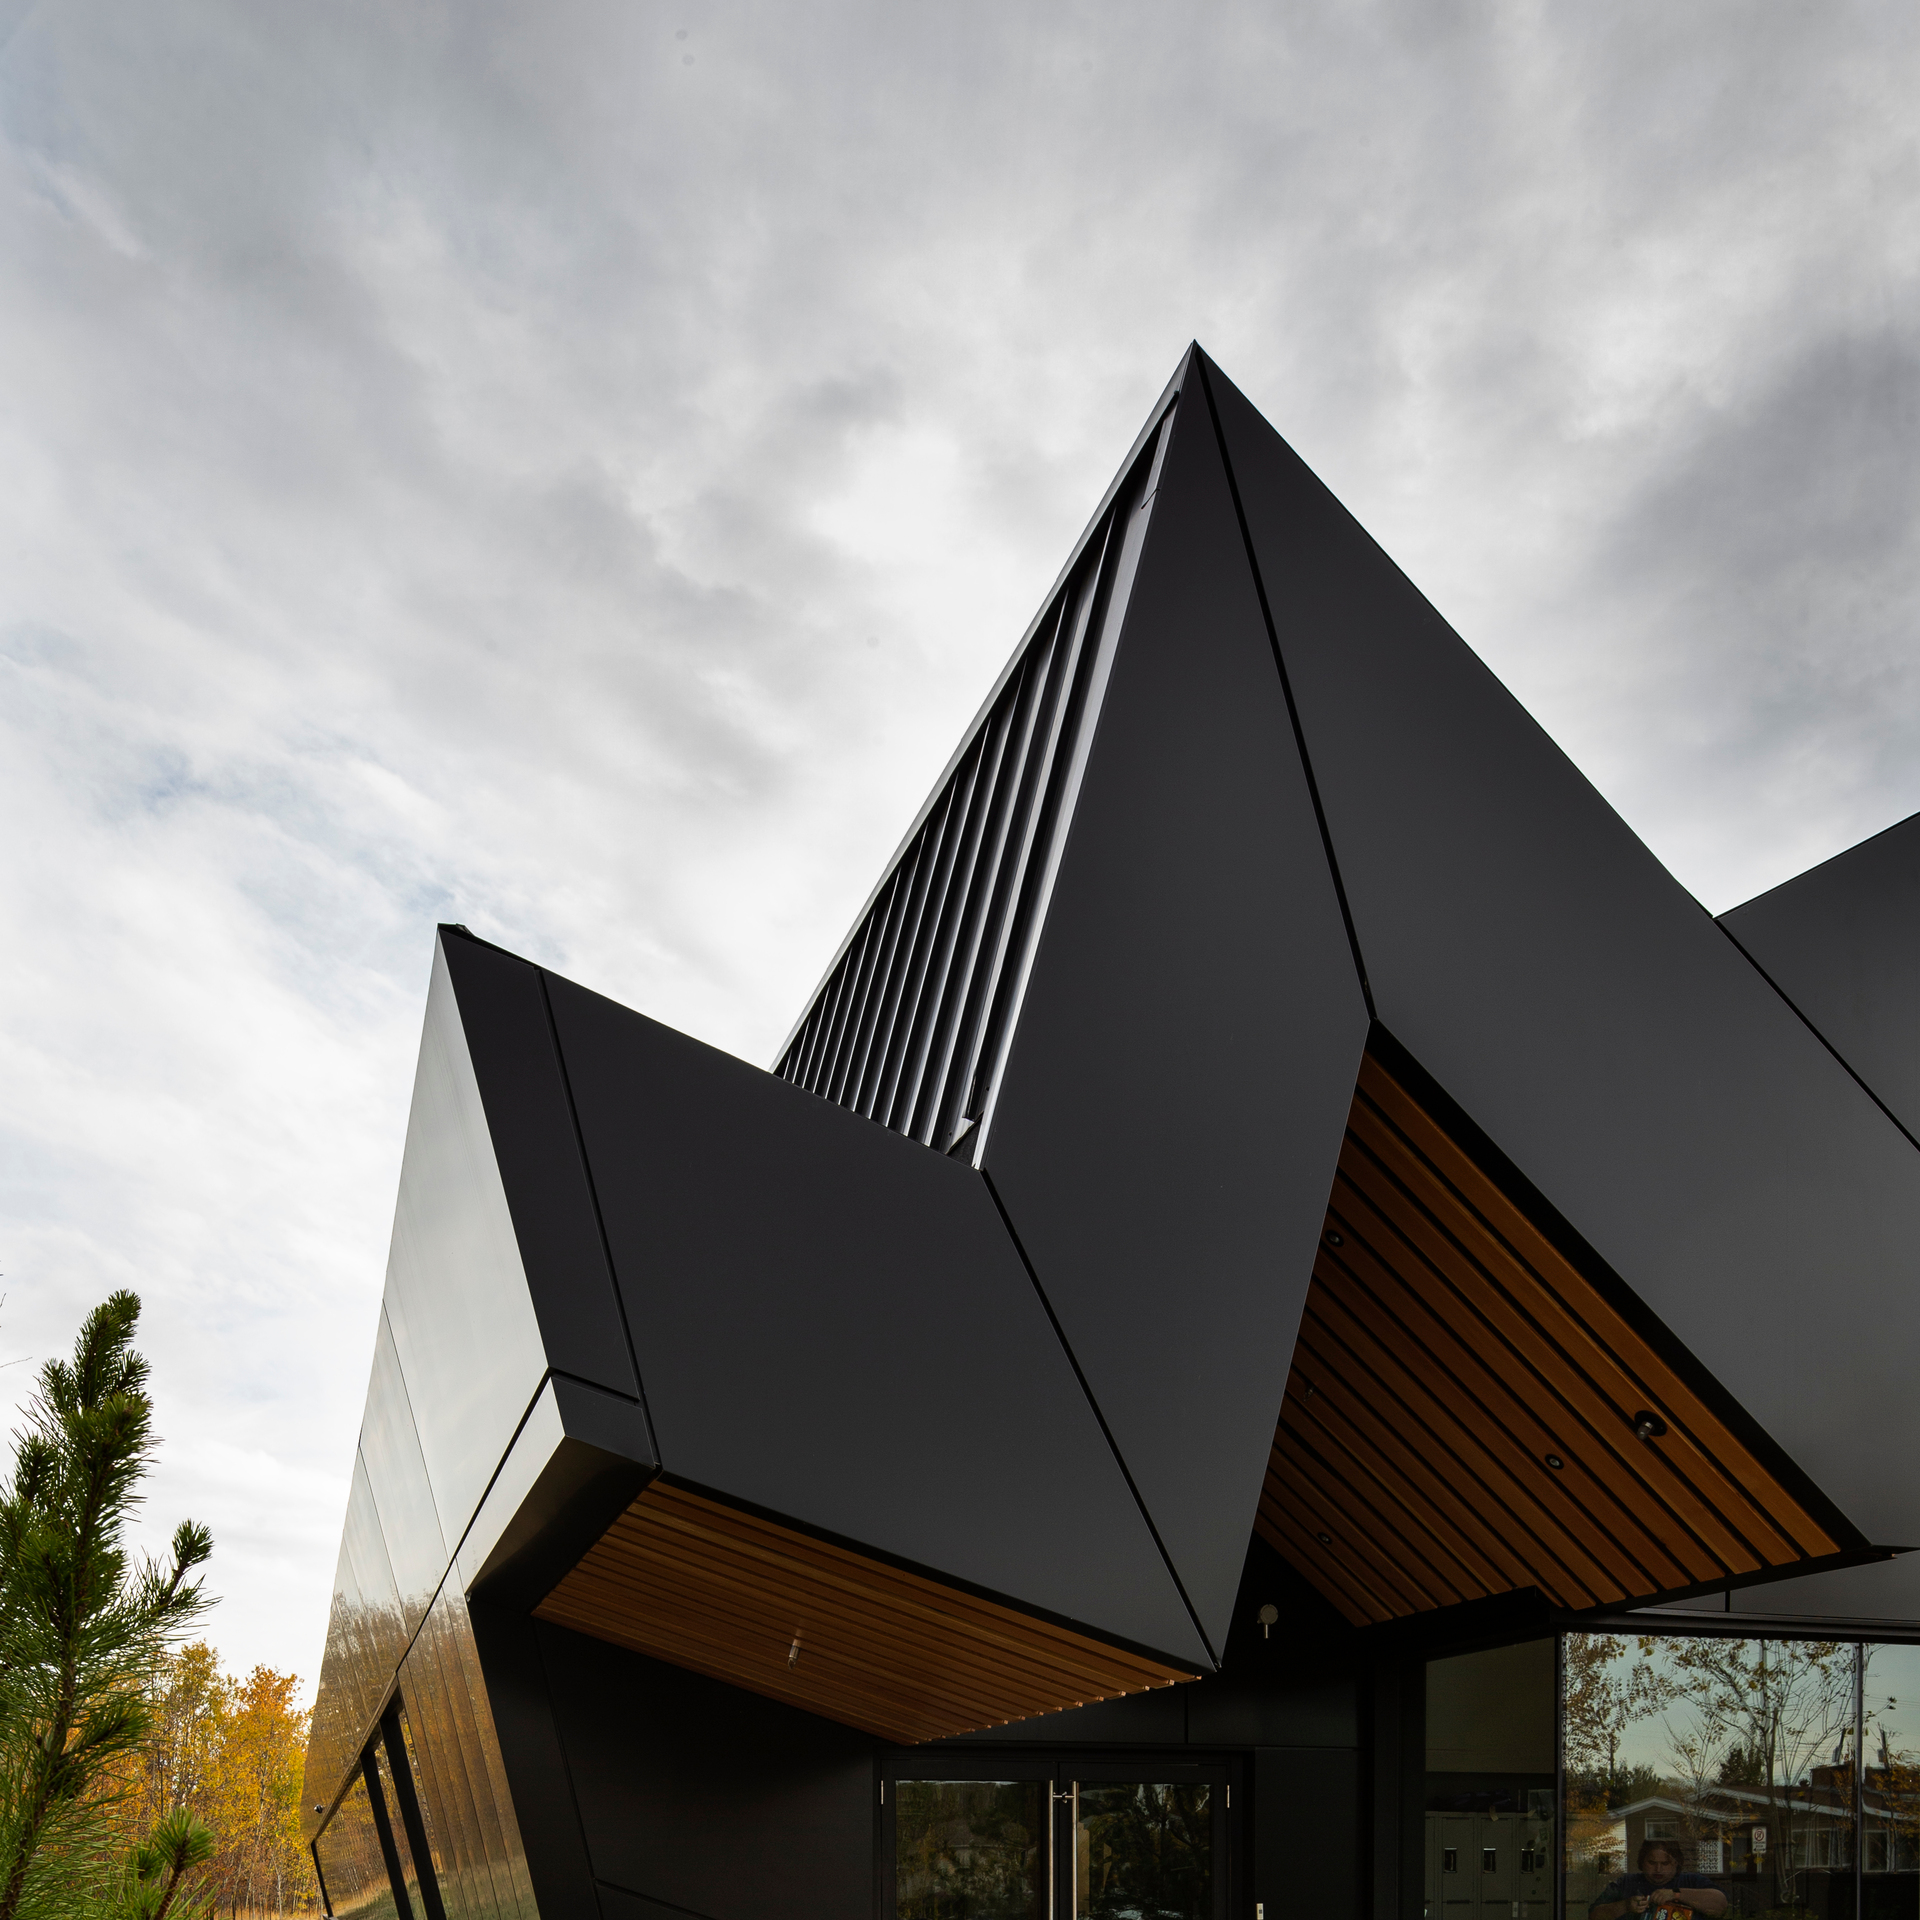 The 14,000 square-feet of metal panels are coated in a Valflon® finish supplied by Sherwin-Williams Coil Coatings in the color TOB Black.   This rich, vibrant and high-gloss color is a fluoropolymer FEVE resin-based coating that offers outstanding color consistency, protection against weathering, chalking, and fading, and excellent overall adhesion.   This finish also meets the highest performance standards, including AAMA 2605 specifications. The brilliant color depth of the Valflon coating allows the project to dynamically stand out.  Photography Credits: Jim Dobie Photography